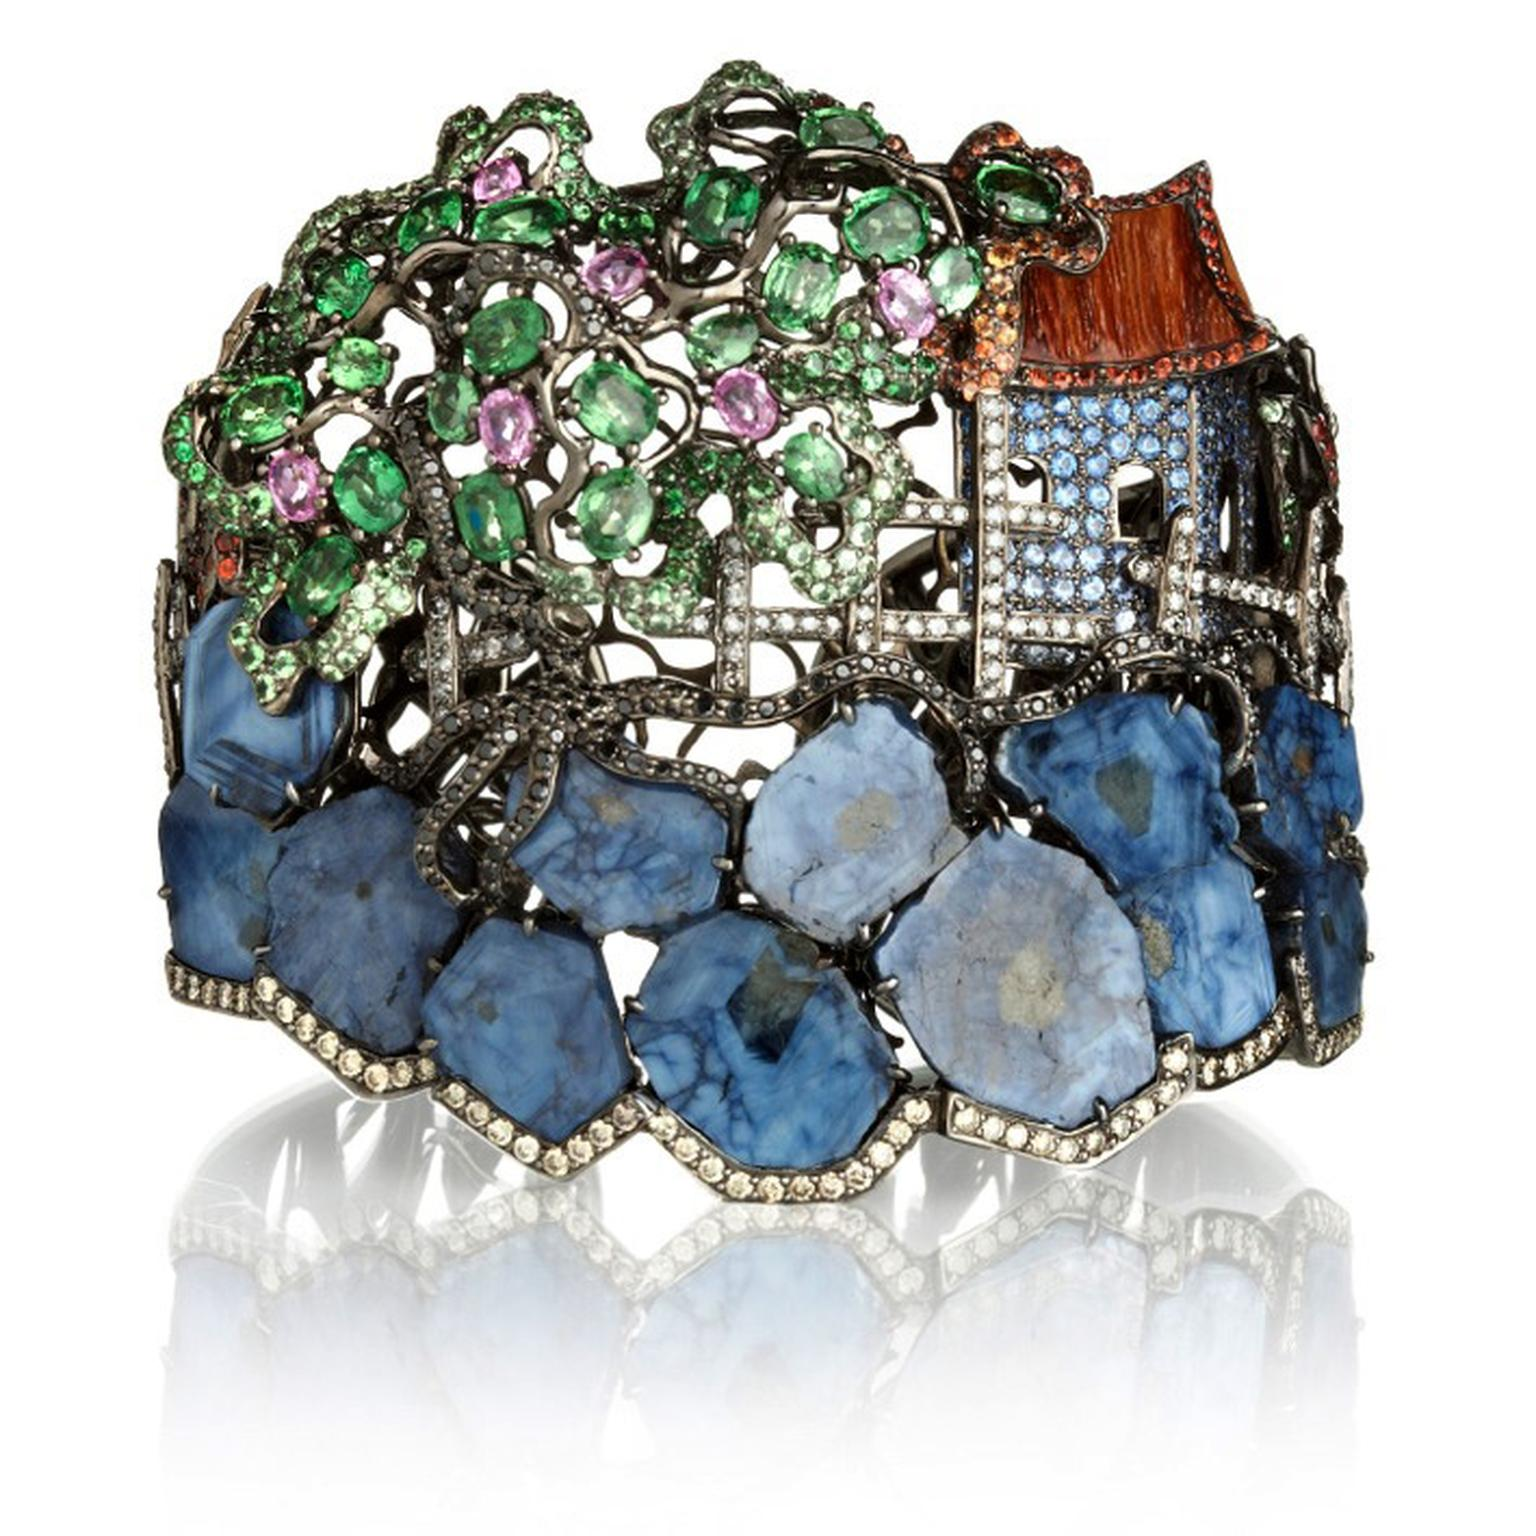 Wendy-Yue-Fantasie-18ct-white-gold--diamondsapphires-and-green-garnet-Madagascar-Retreat-bangle-By-Wendy-Yue--for-Annoushka